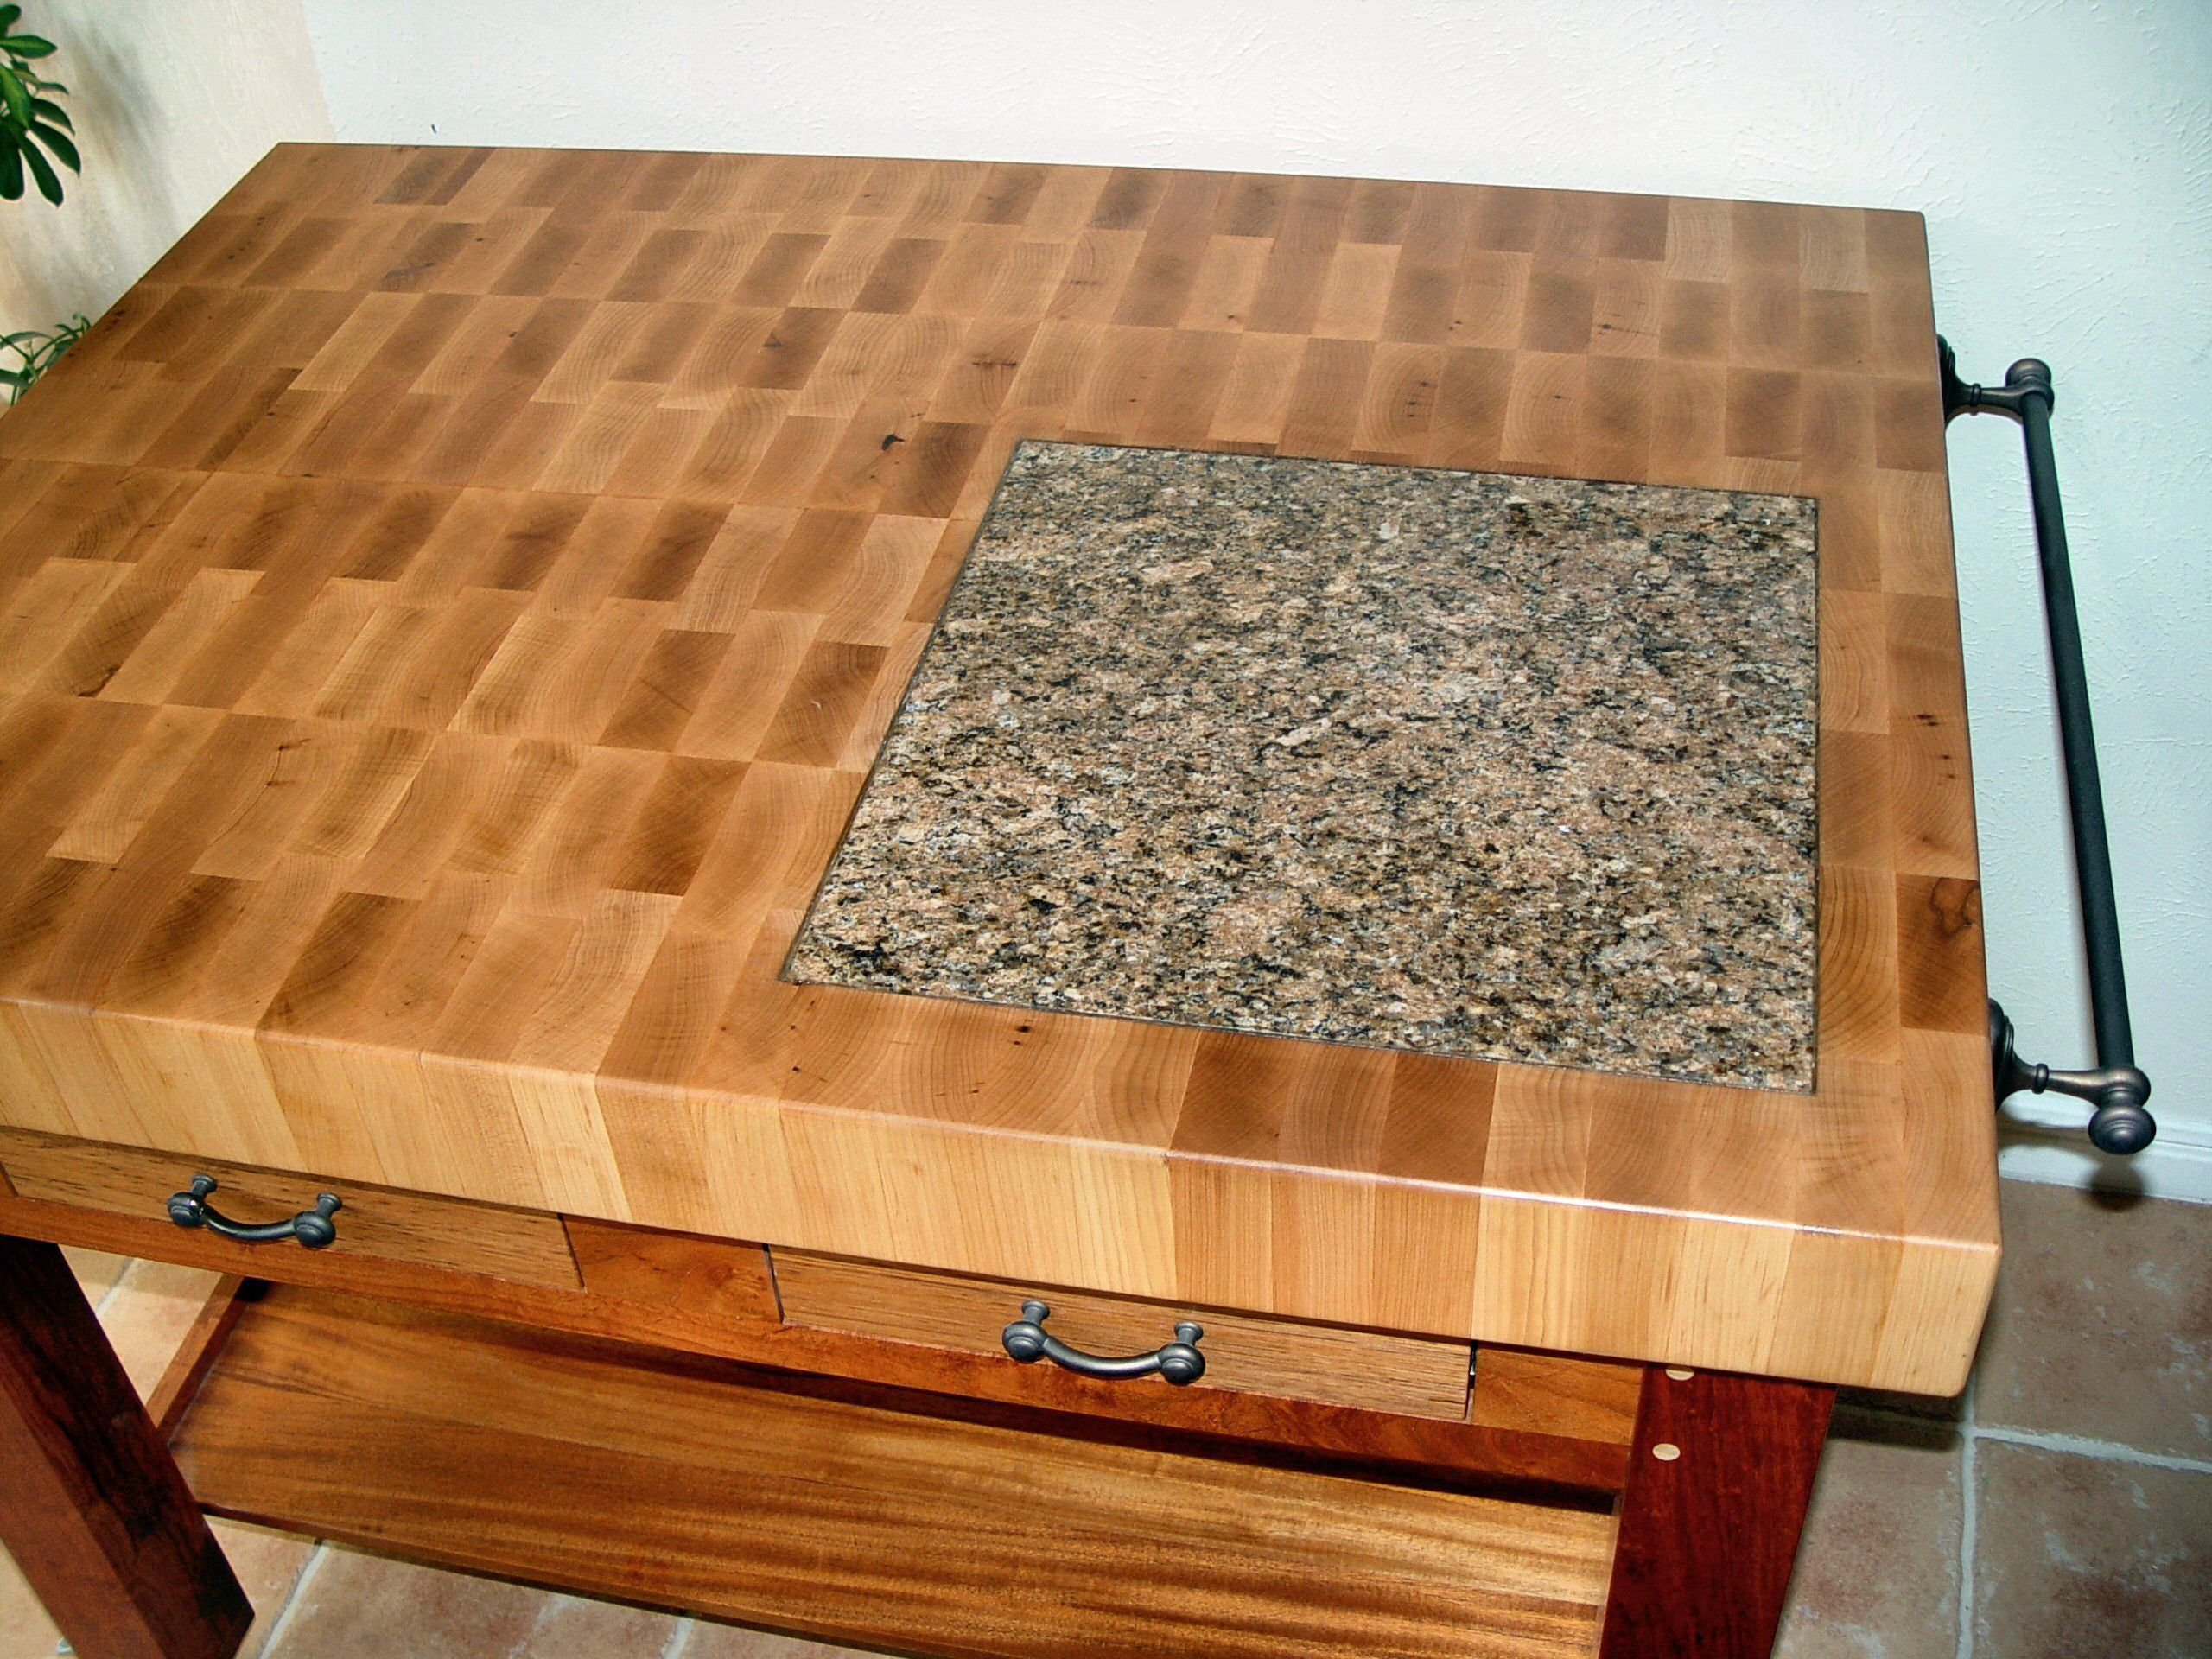 Custom wood countertop options marble granite and wood for Granite countertop width